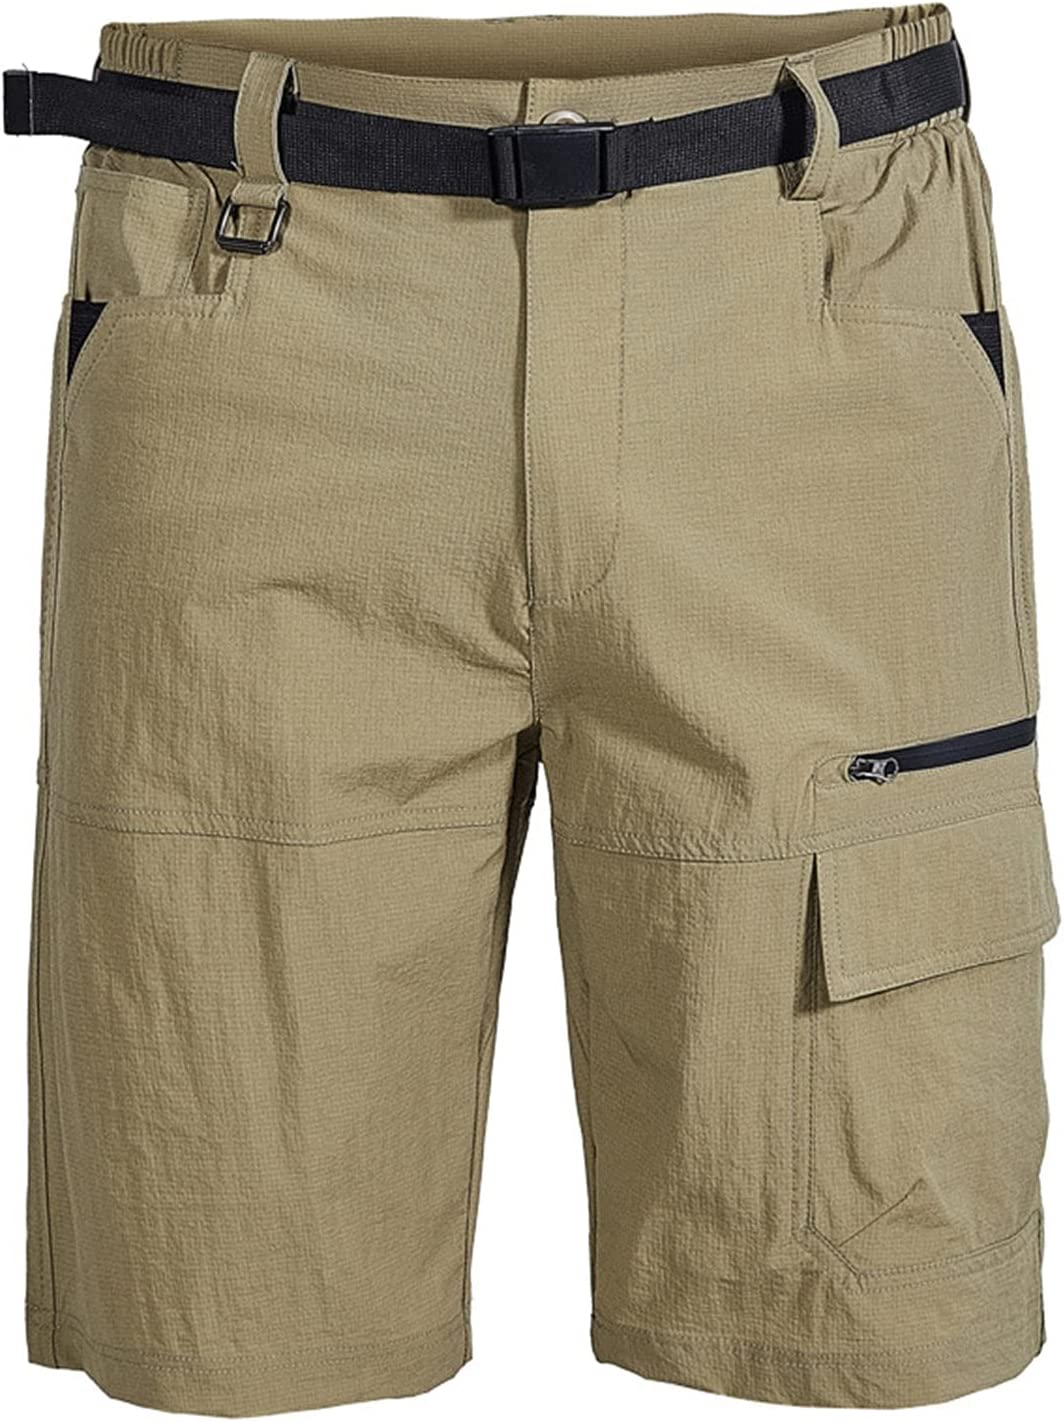 1 year warranty Quick Dry Casual Cargo Shorts Wholesale for Hiking Fishing Lightweight Men